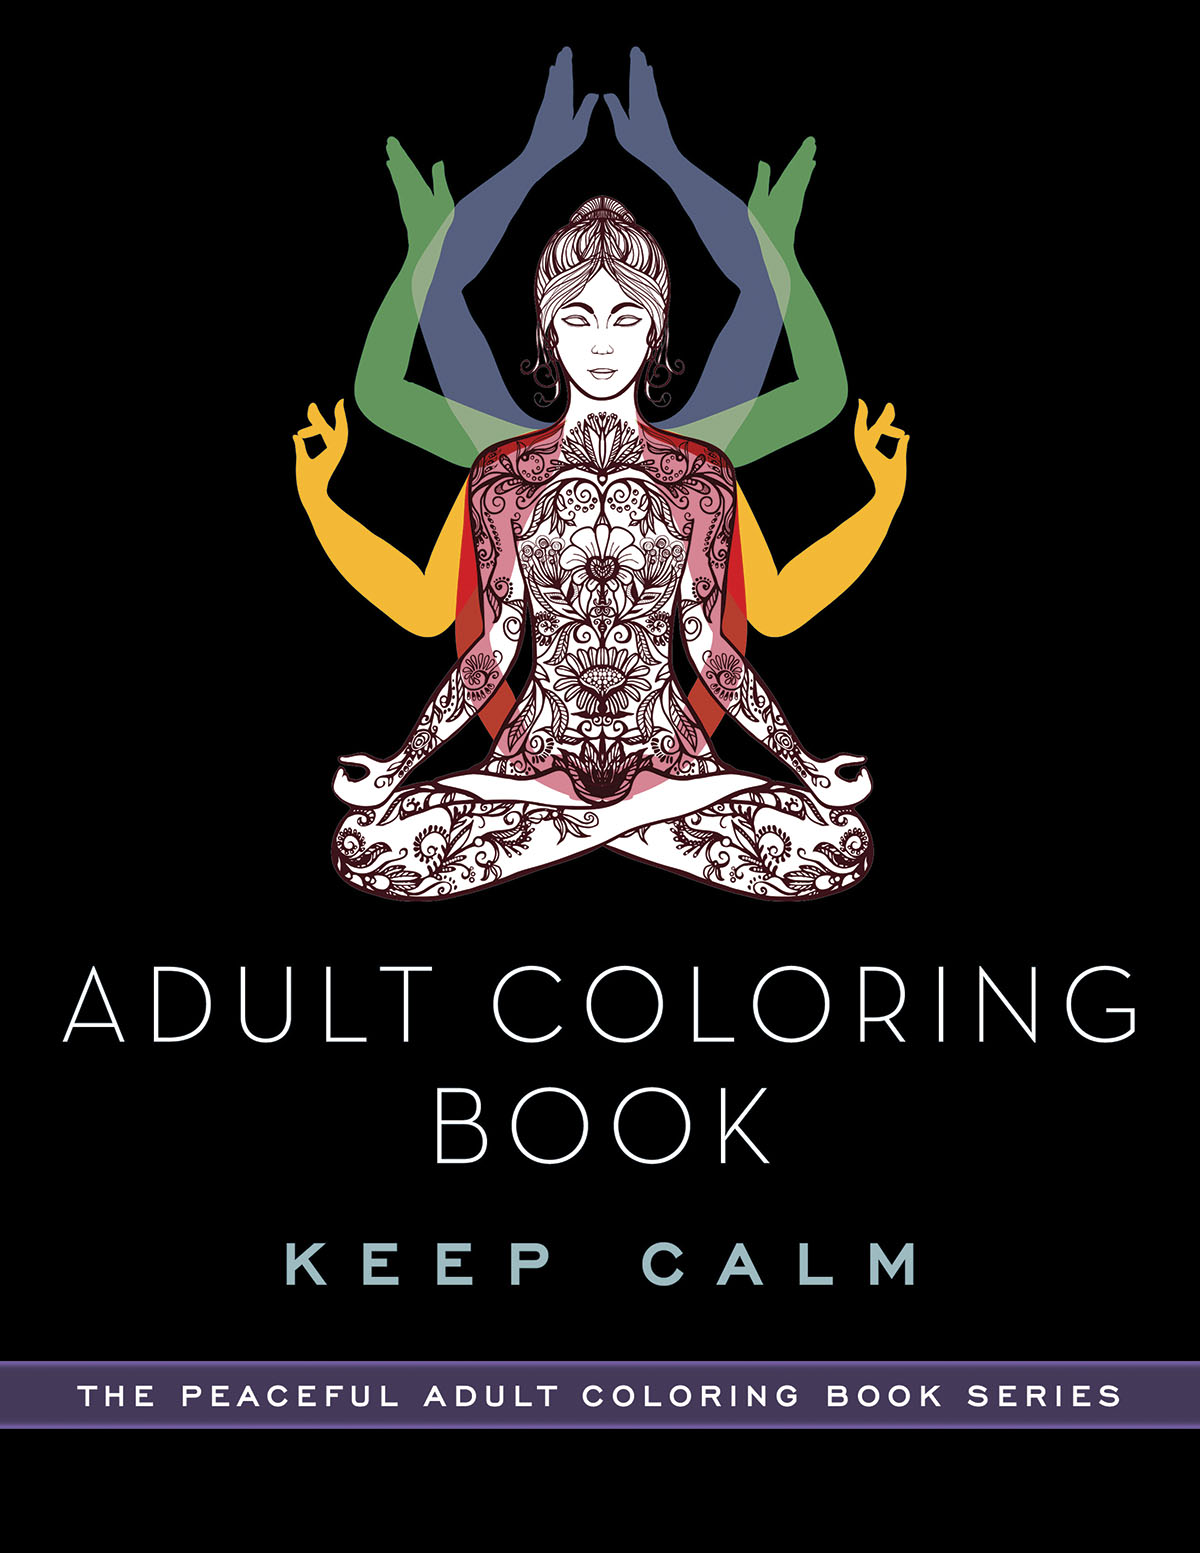 Now You Can Have Your Zen Moment In The Full Vibrancy Of Color Part Peaceful Adult Coloring Book Series This Is Overflowing